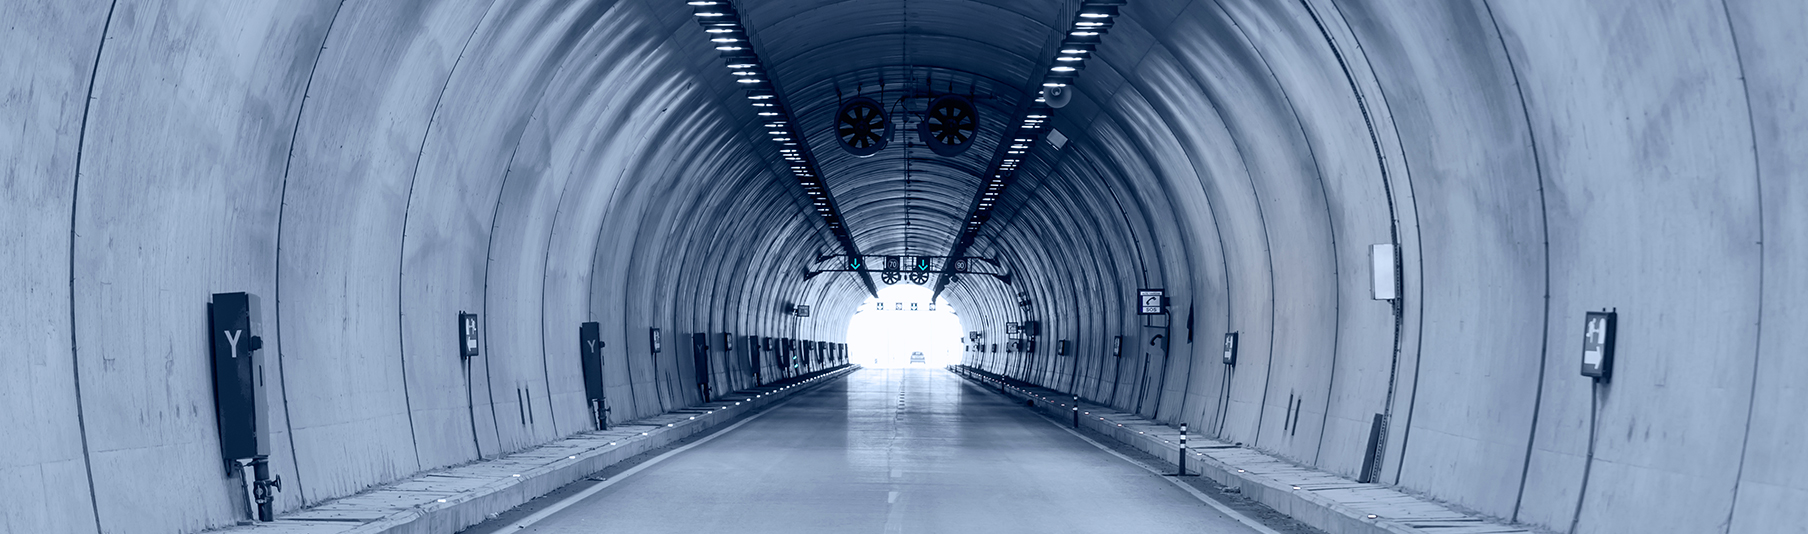 Claims: Inside view of a highway road tunnel